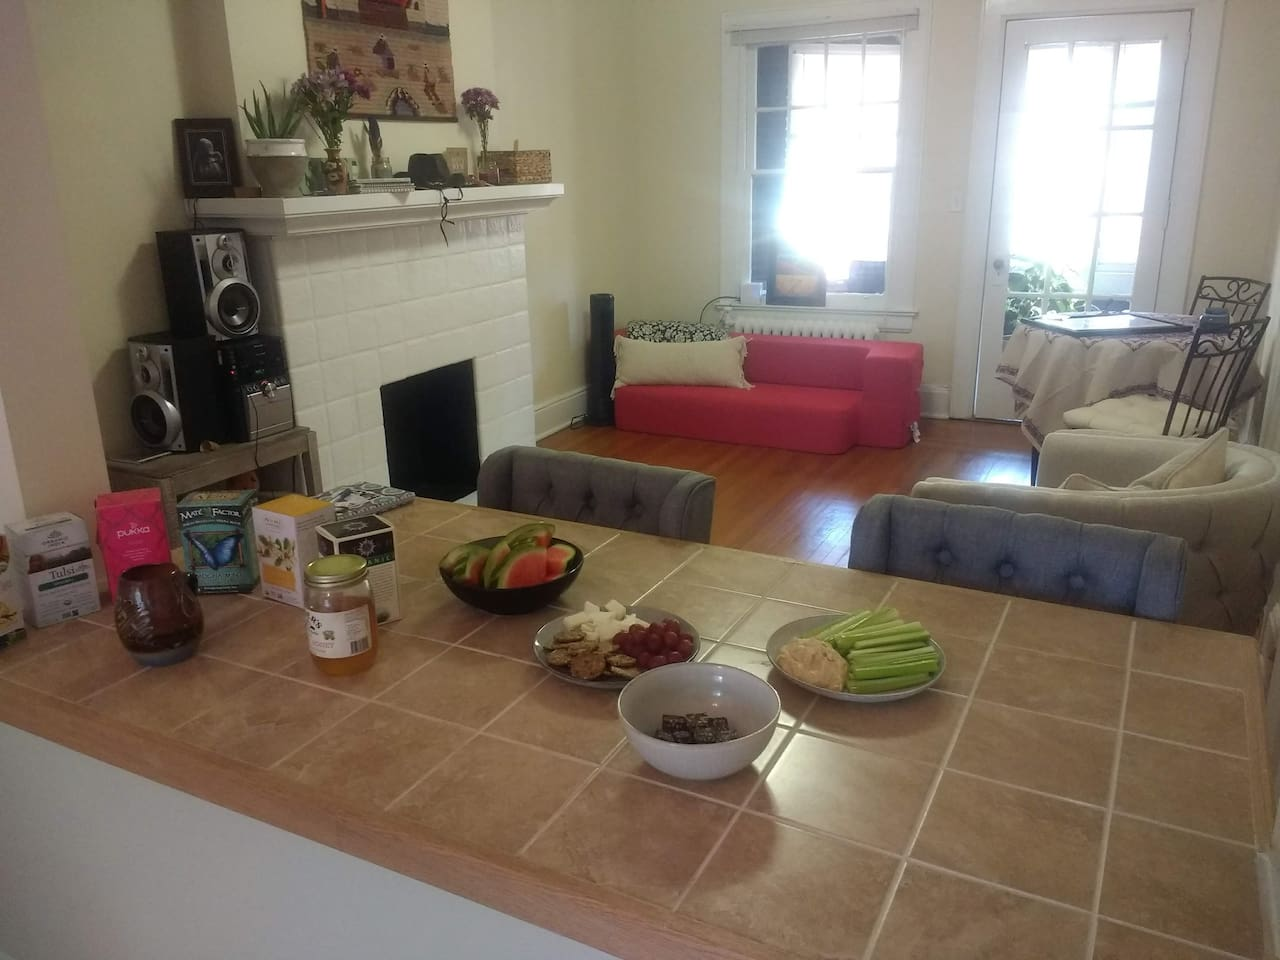 Common Living Area for your full enjoyment. Counter space great for breakfasts or sipping your morning tea/coffee.